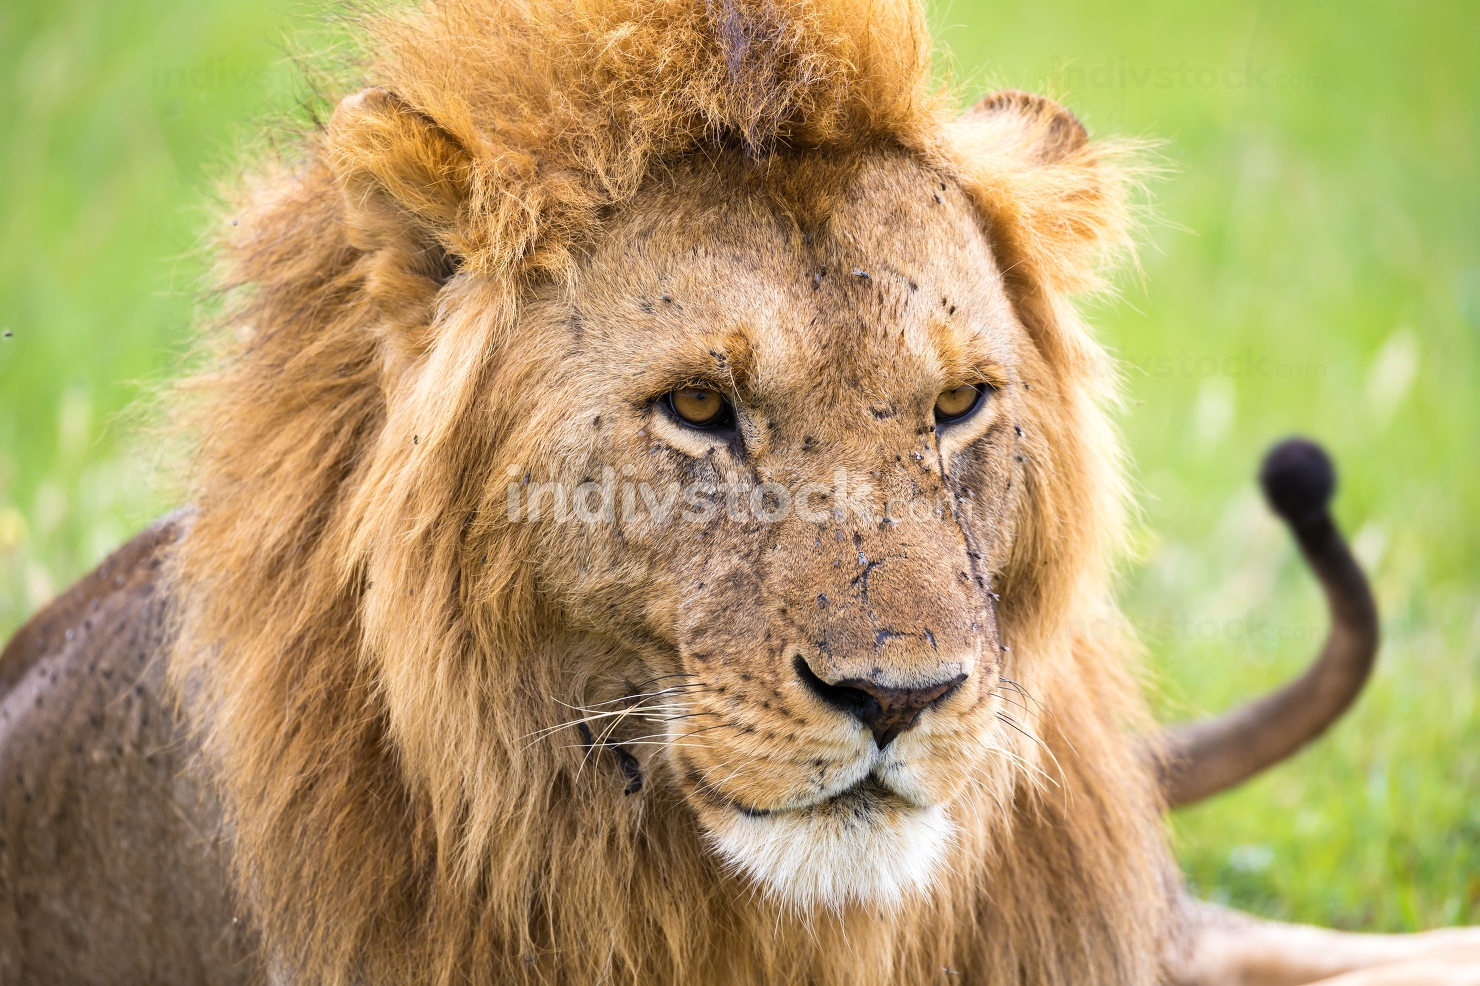 A close-up of the face of a lion in the savannah of Kenya